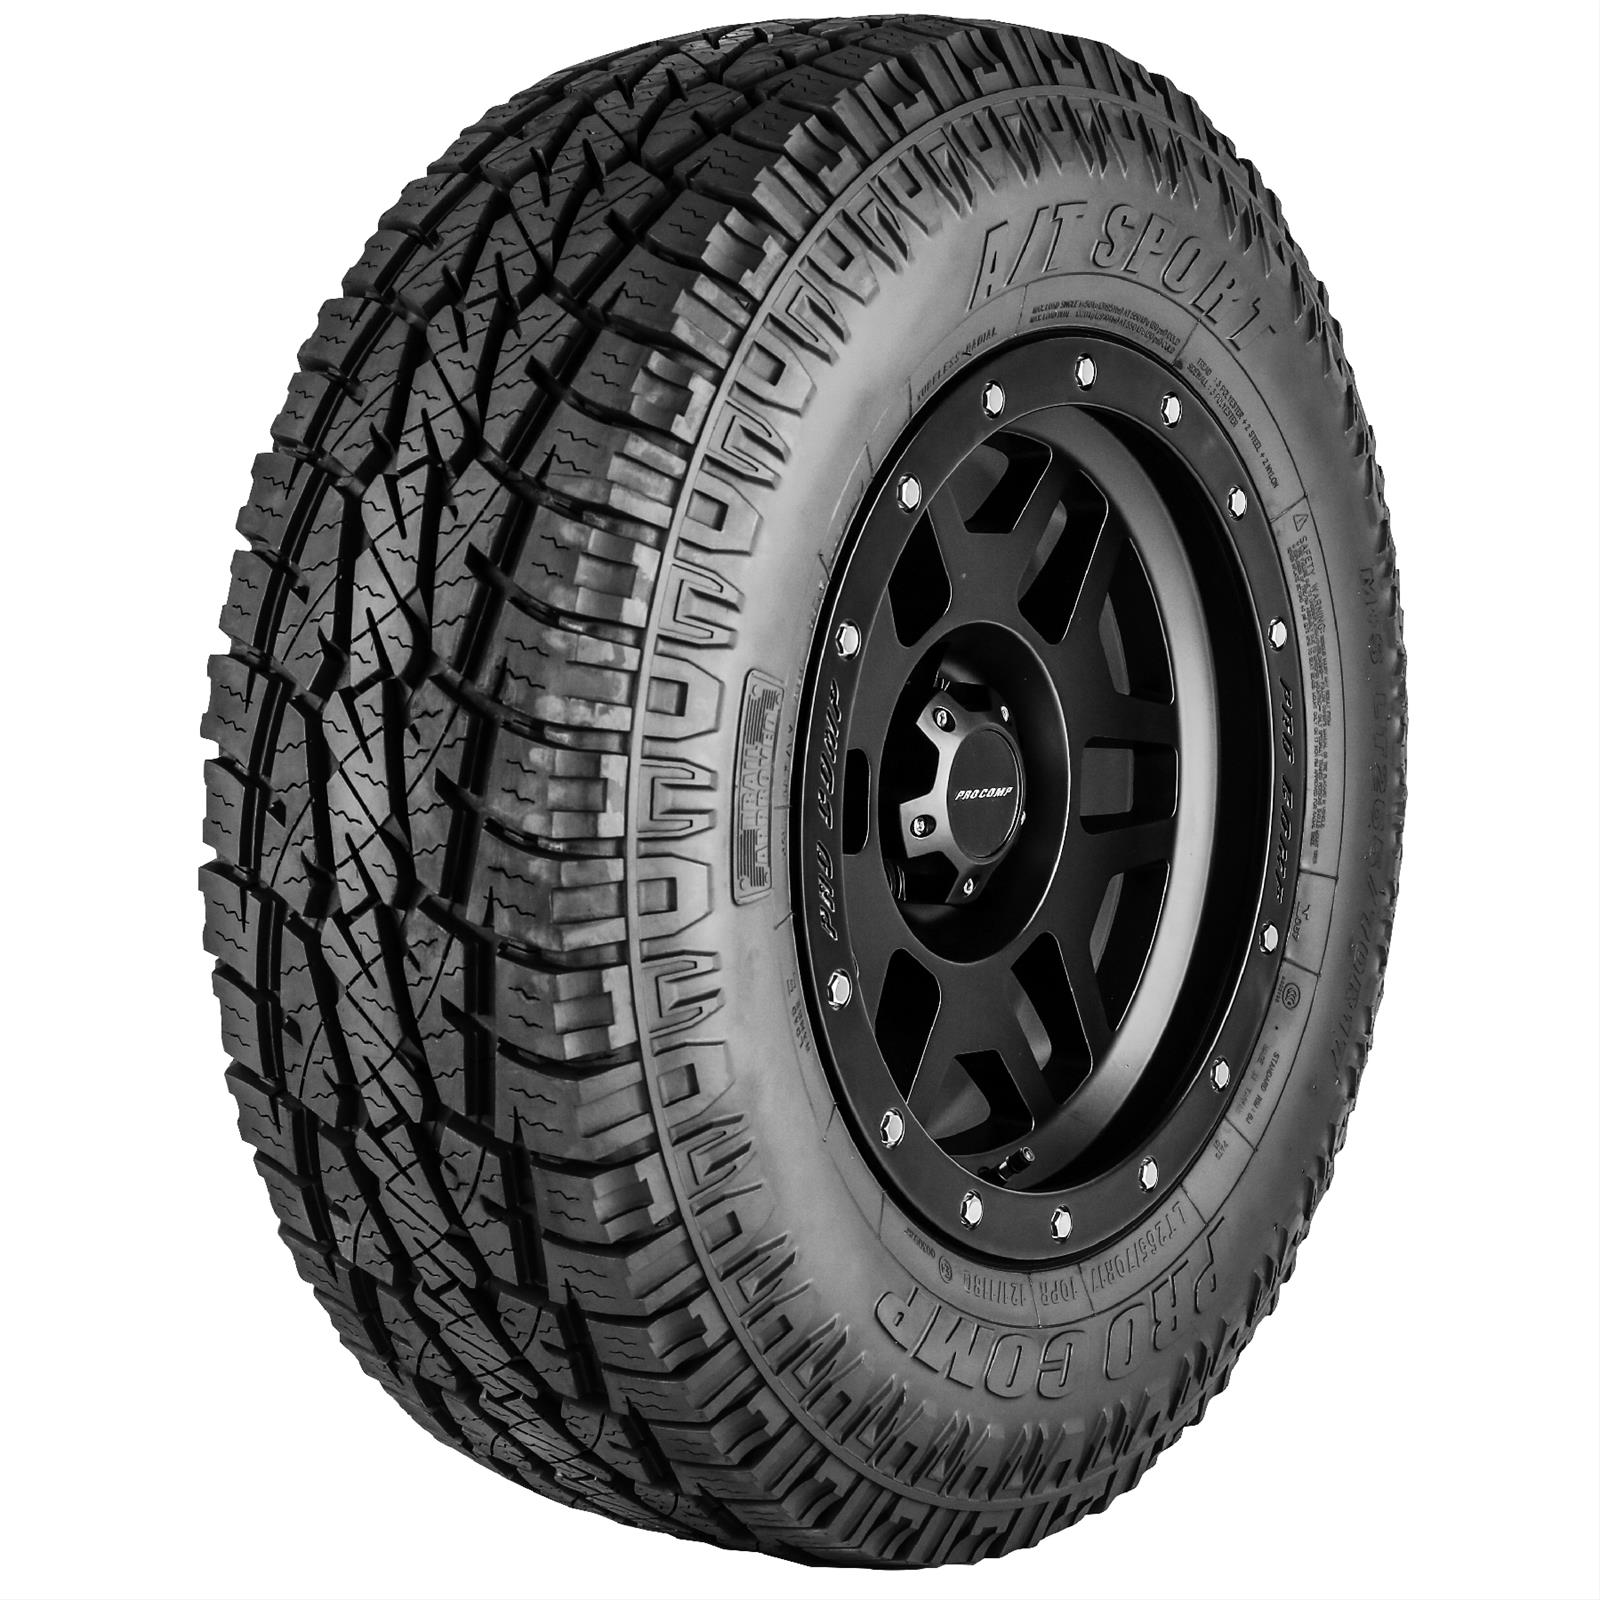 Pro comp all terrain sport tires 42657516 free shipping on pro comp all terrain sport tires 42657516 free shipping on orders over 99 at summit racing sciox Image collections